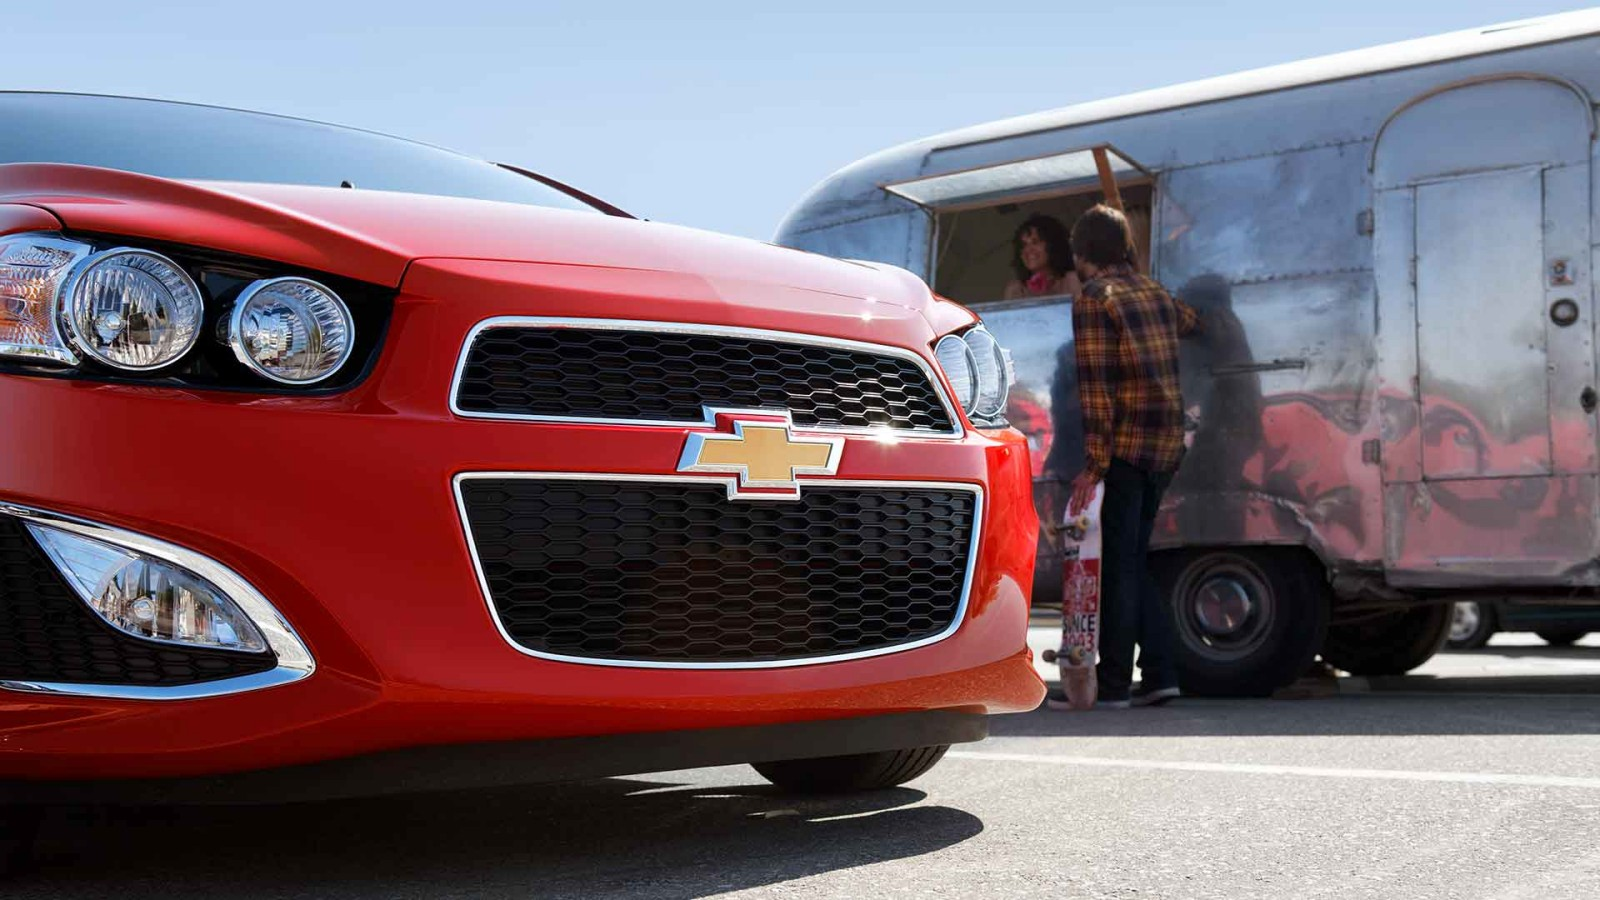 2016 Chevrolet Sonic front exterior up close